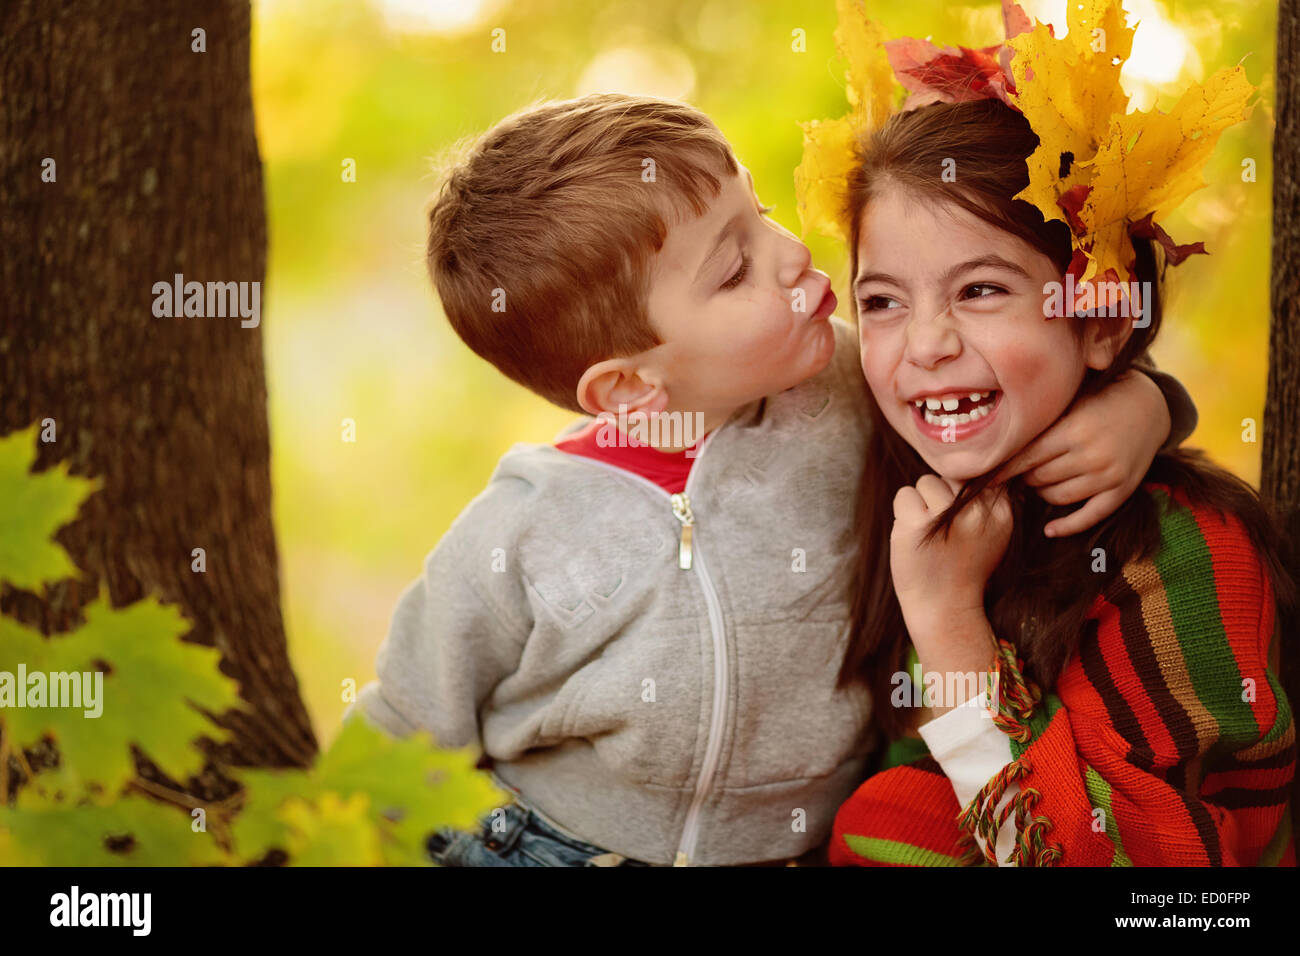 Boy hugging a girl, trying to kiss her - Stock Image